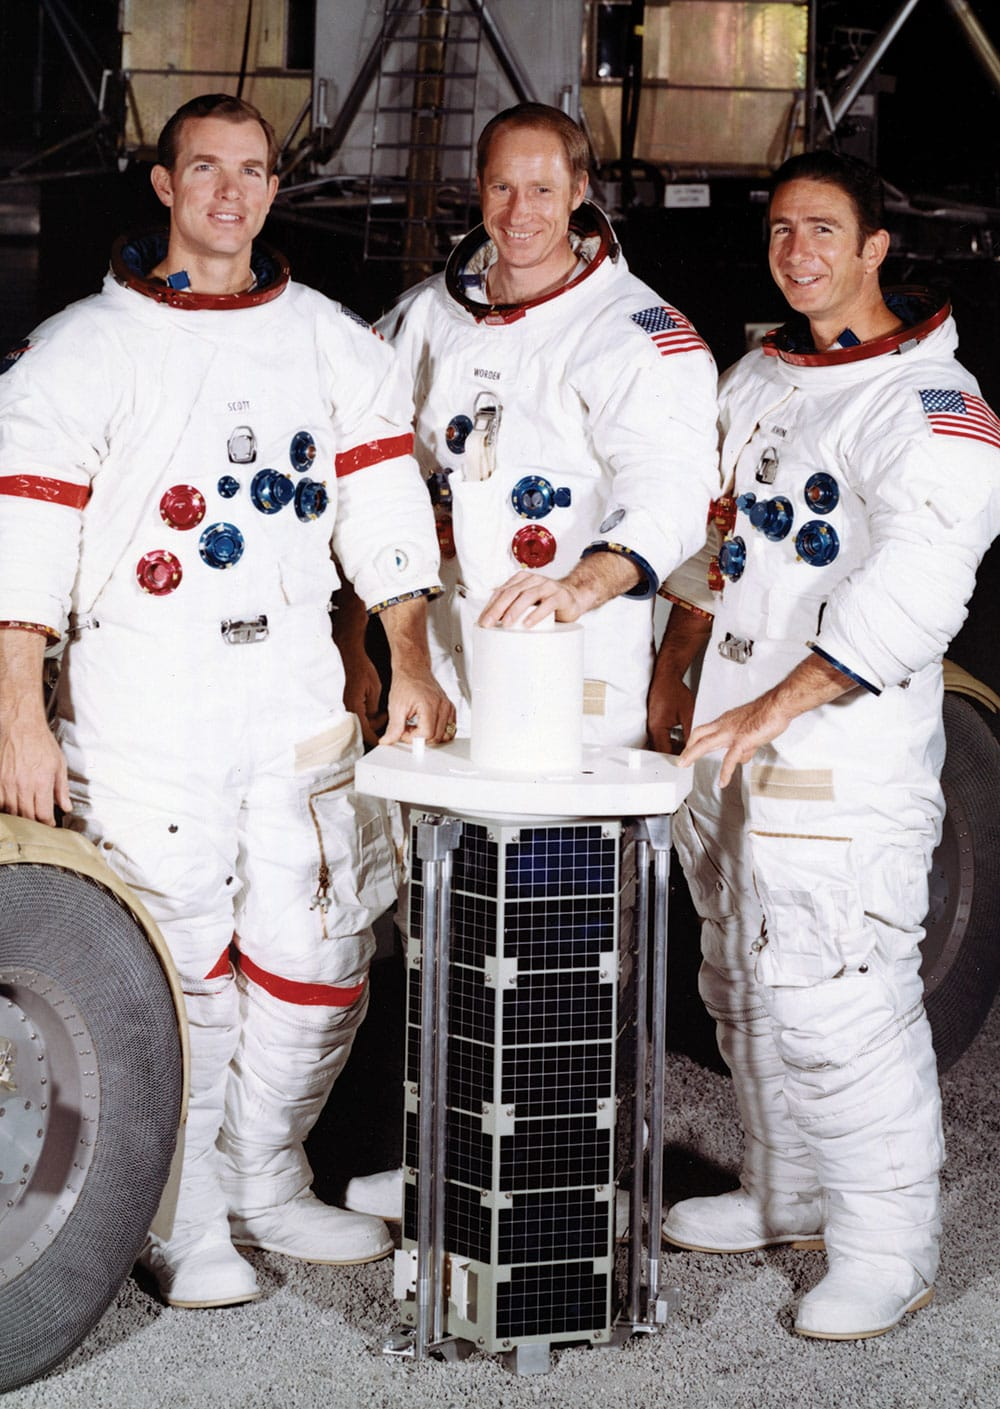 The crew of Apollo 15, from left, David R. Scott, Alfred M. Worden, and James B. Irwin, spent 12 days in space.